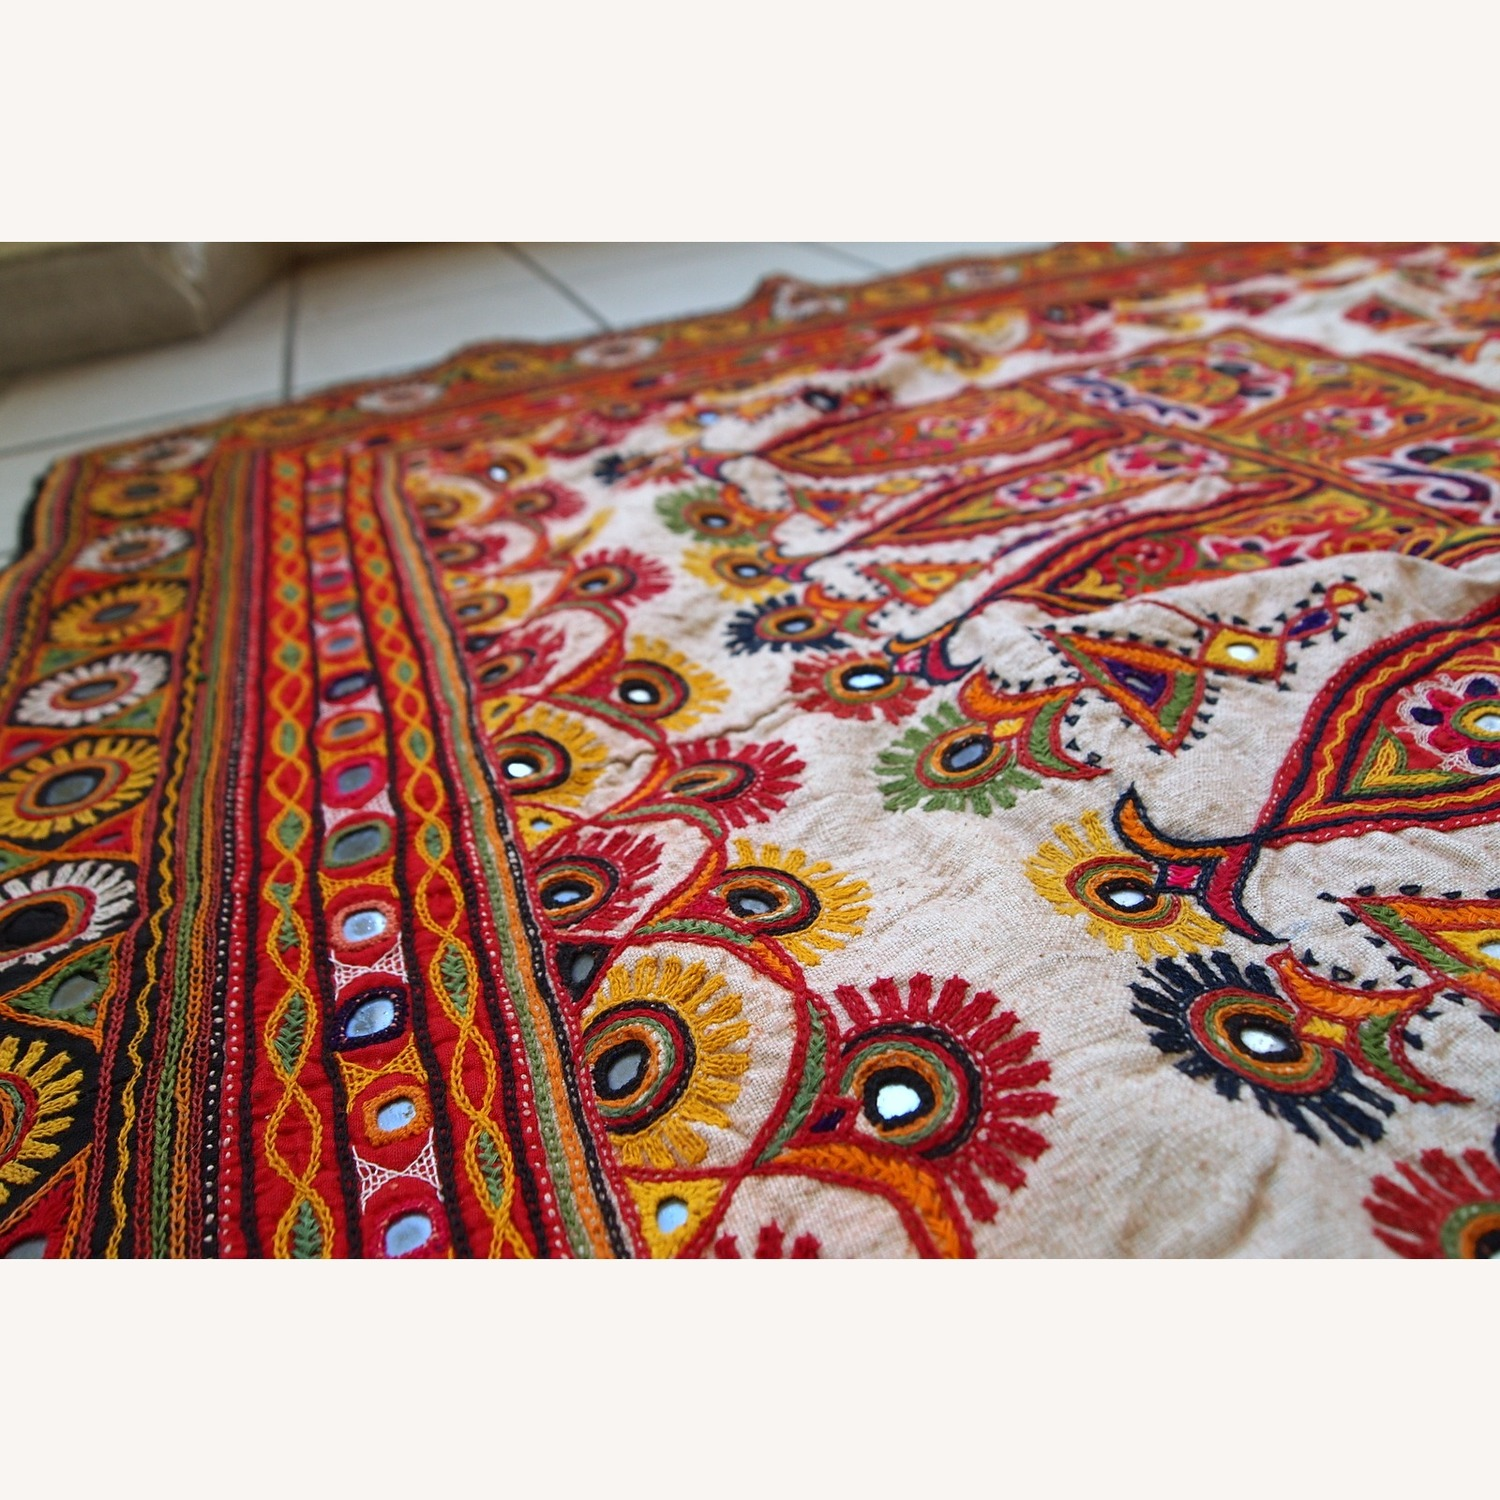 Handmade Indian Wall Hanging Embroidered Tapestry - image-10